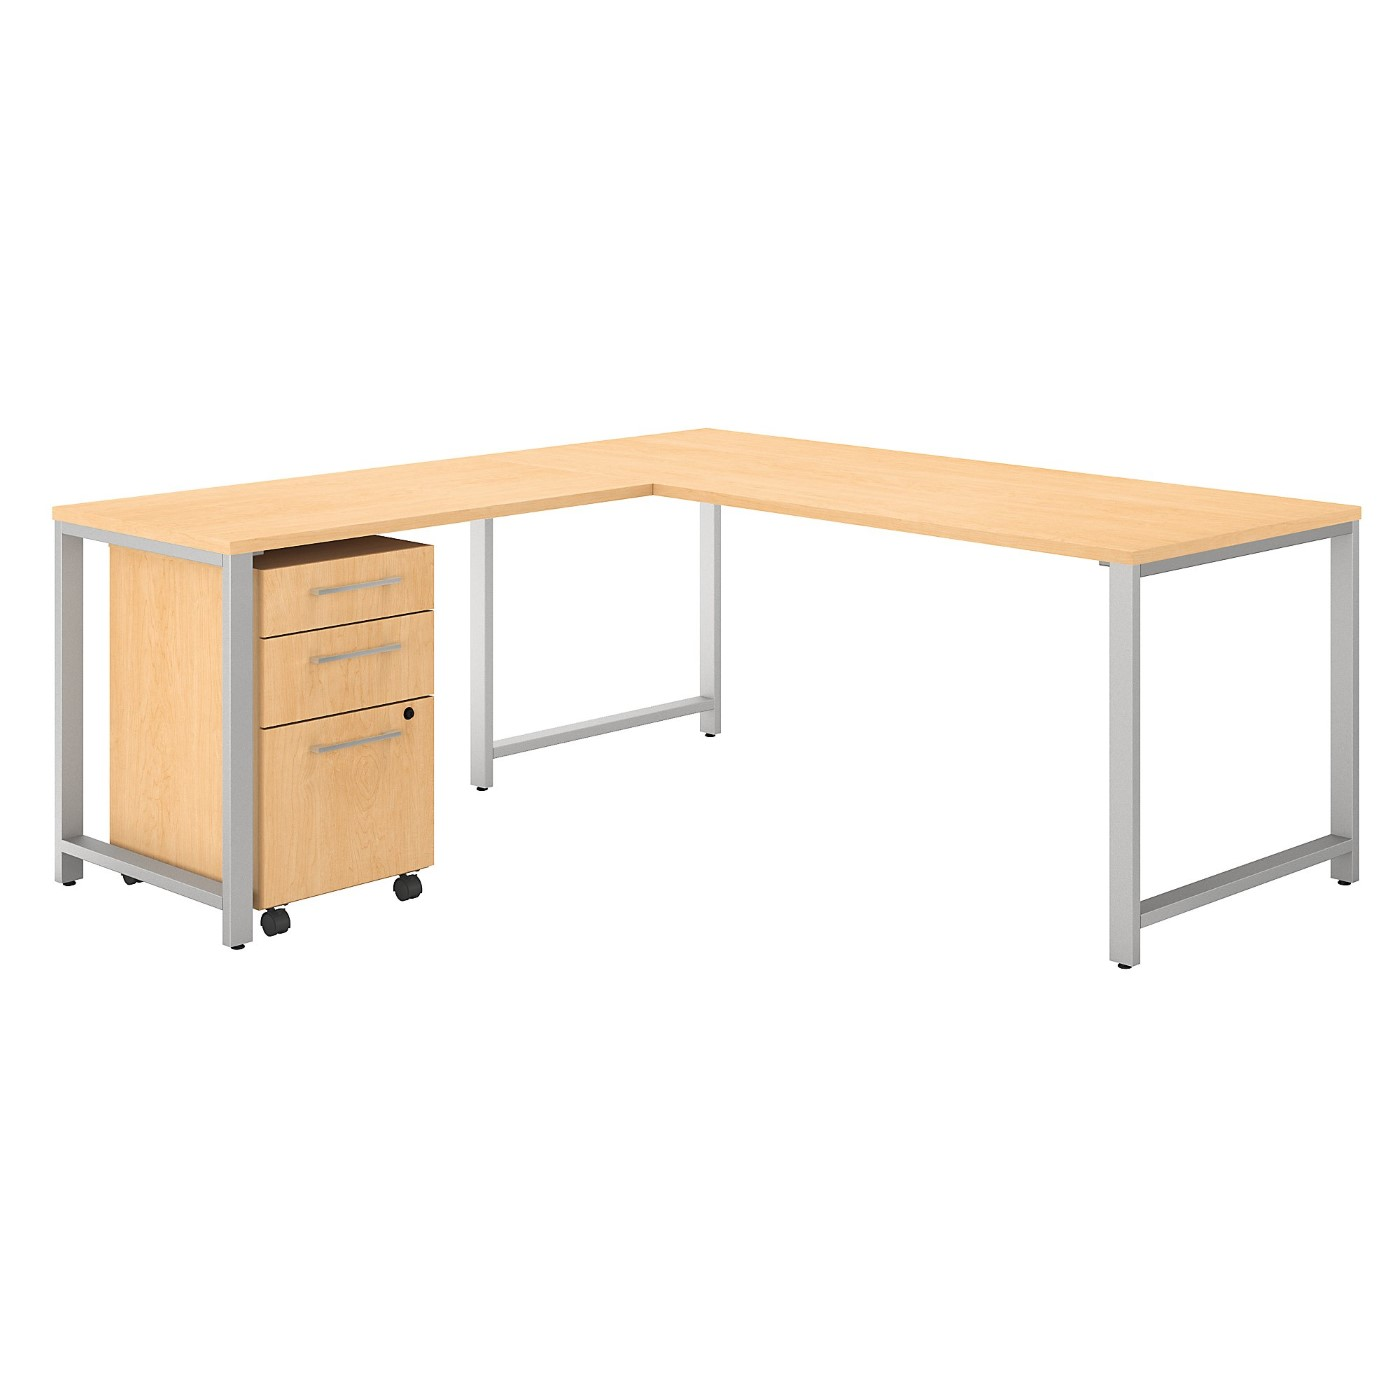 BUSH BUSINESS FURNITURE 400 SERIES 72W L SHAPED DESK WITH 48W RETURN AND 3 DRAWER MOBILE FILE CABINET. FREE SHIPPINGTAA COMPLIANTAMERICAN MADE 30H x 72L x 72W.